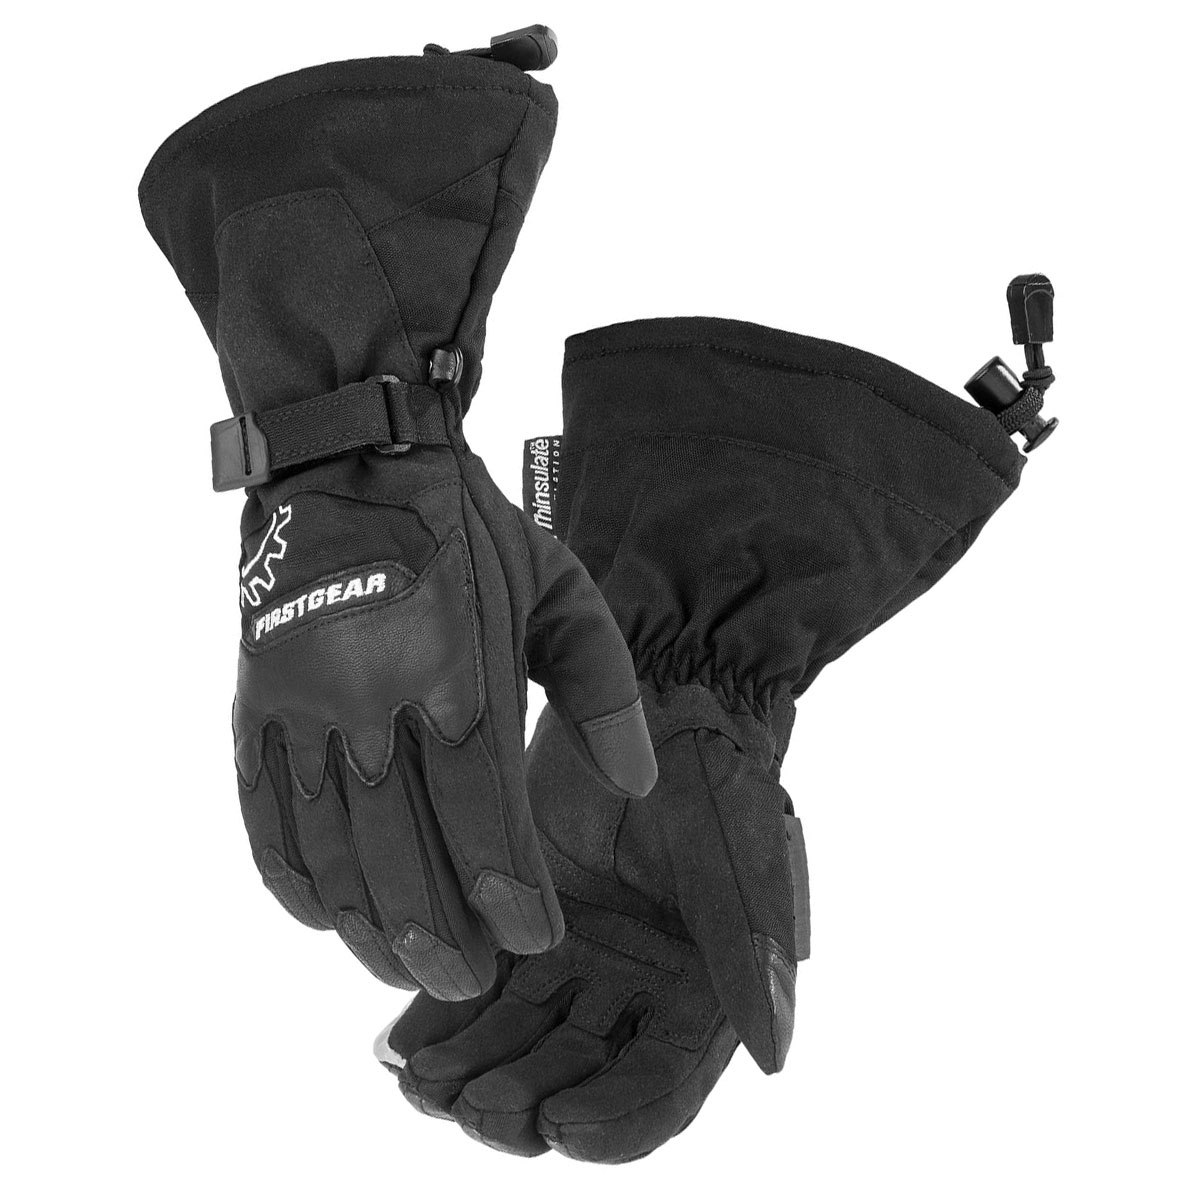 Firstgear Women's Exlporer Black Gloves